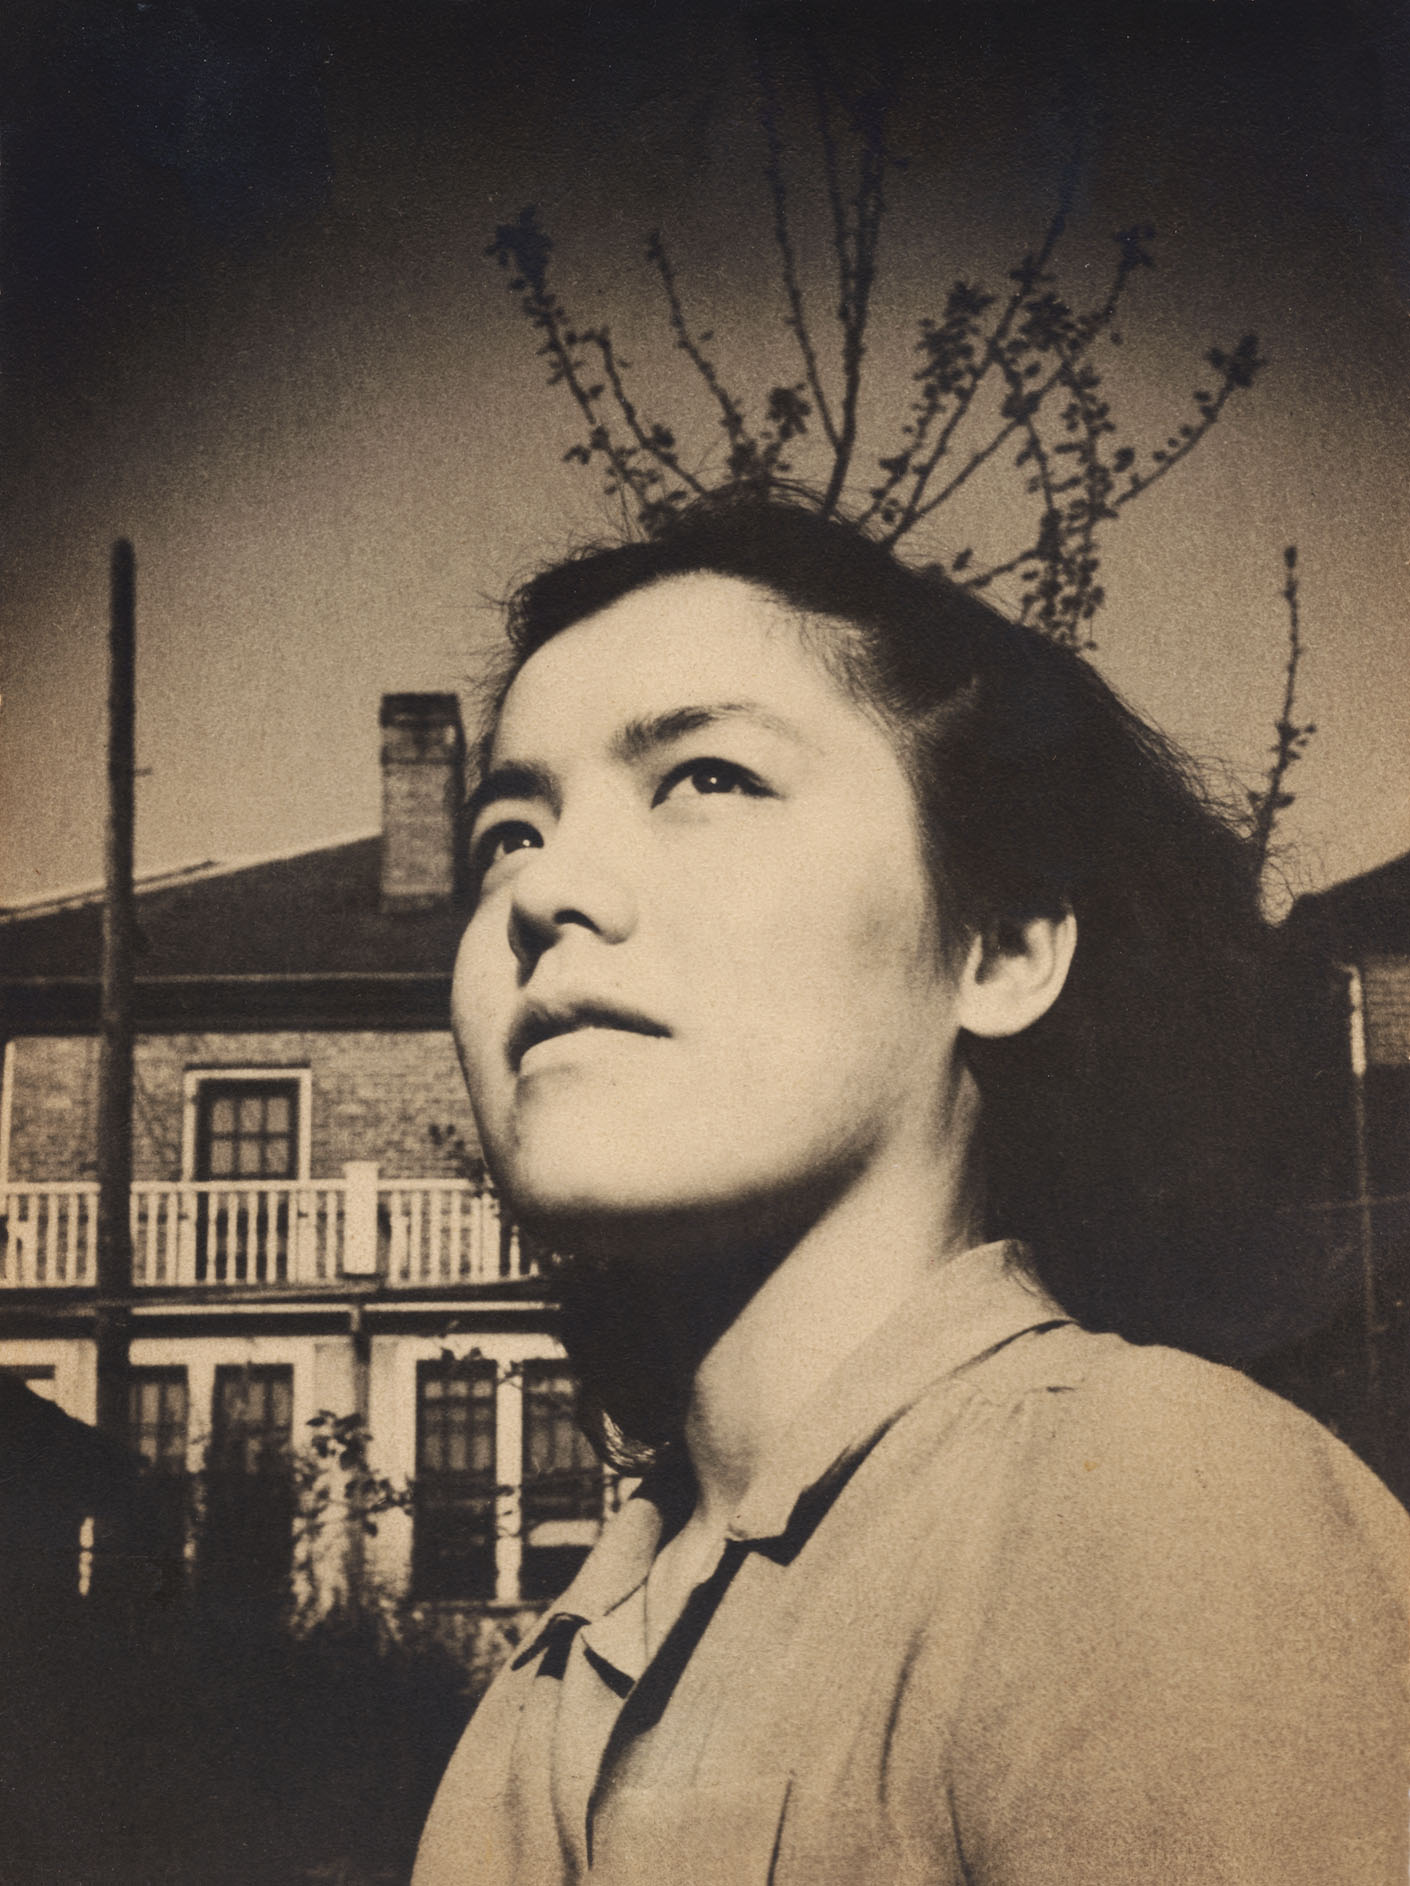 American revolutionary the evolution of grace lee boggs